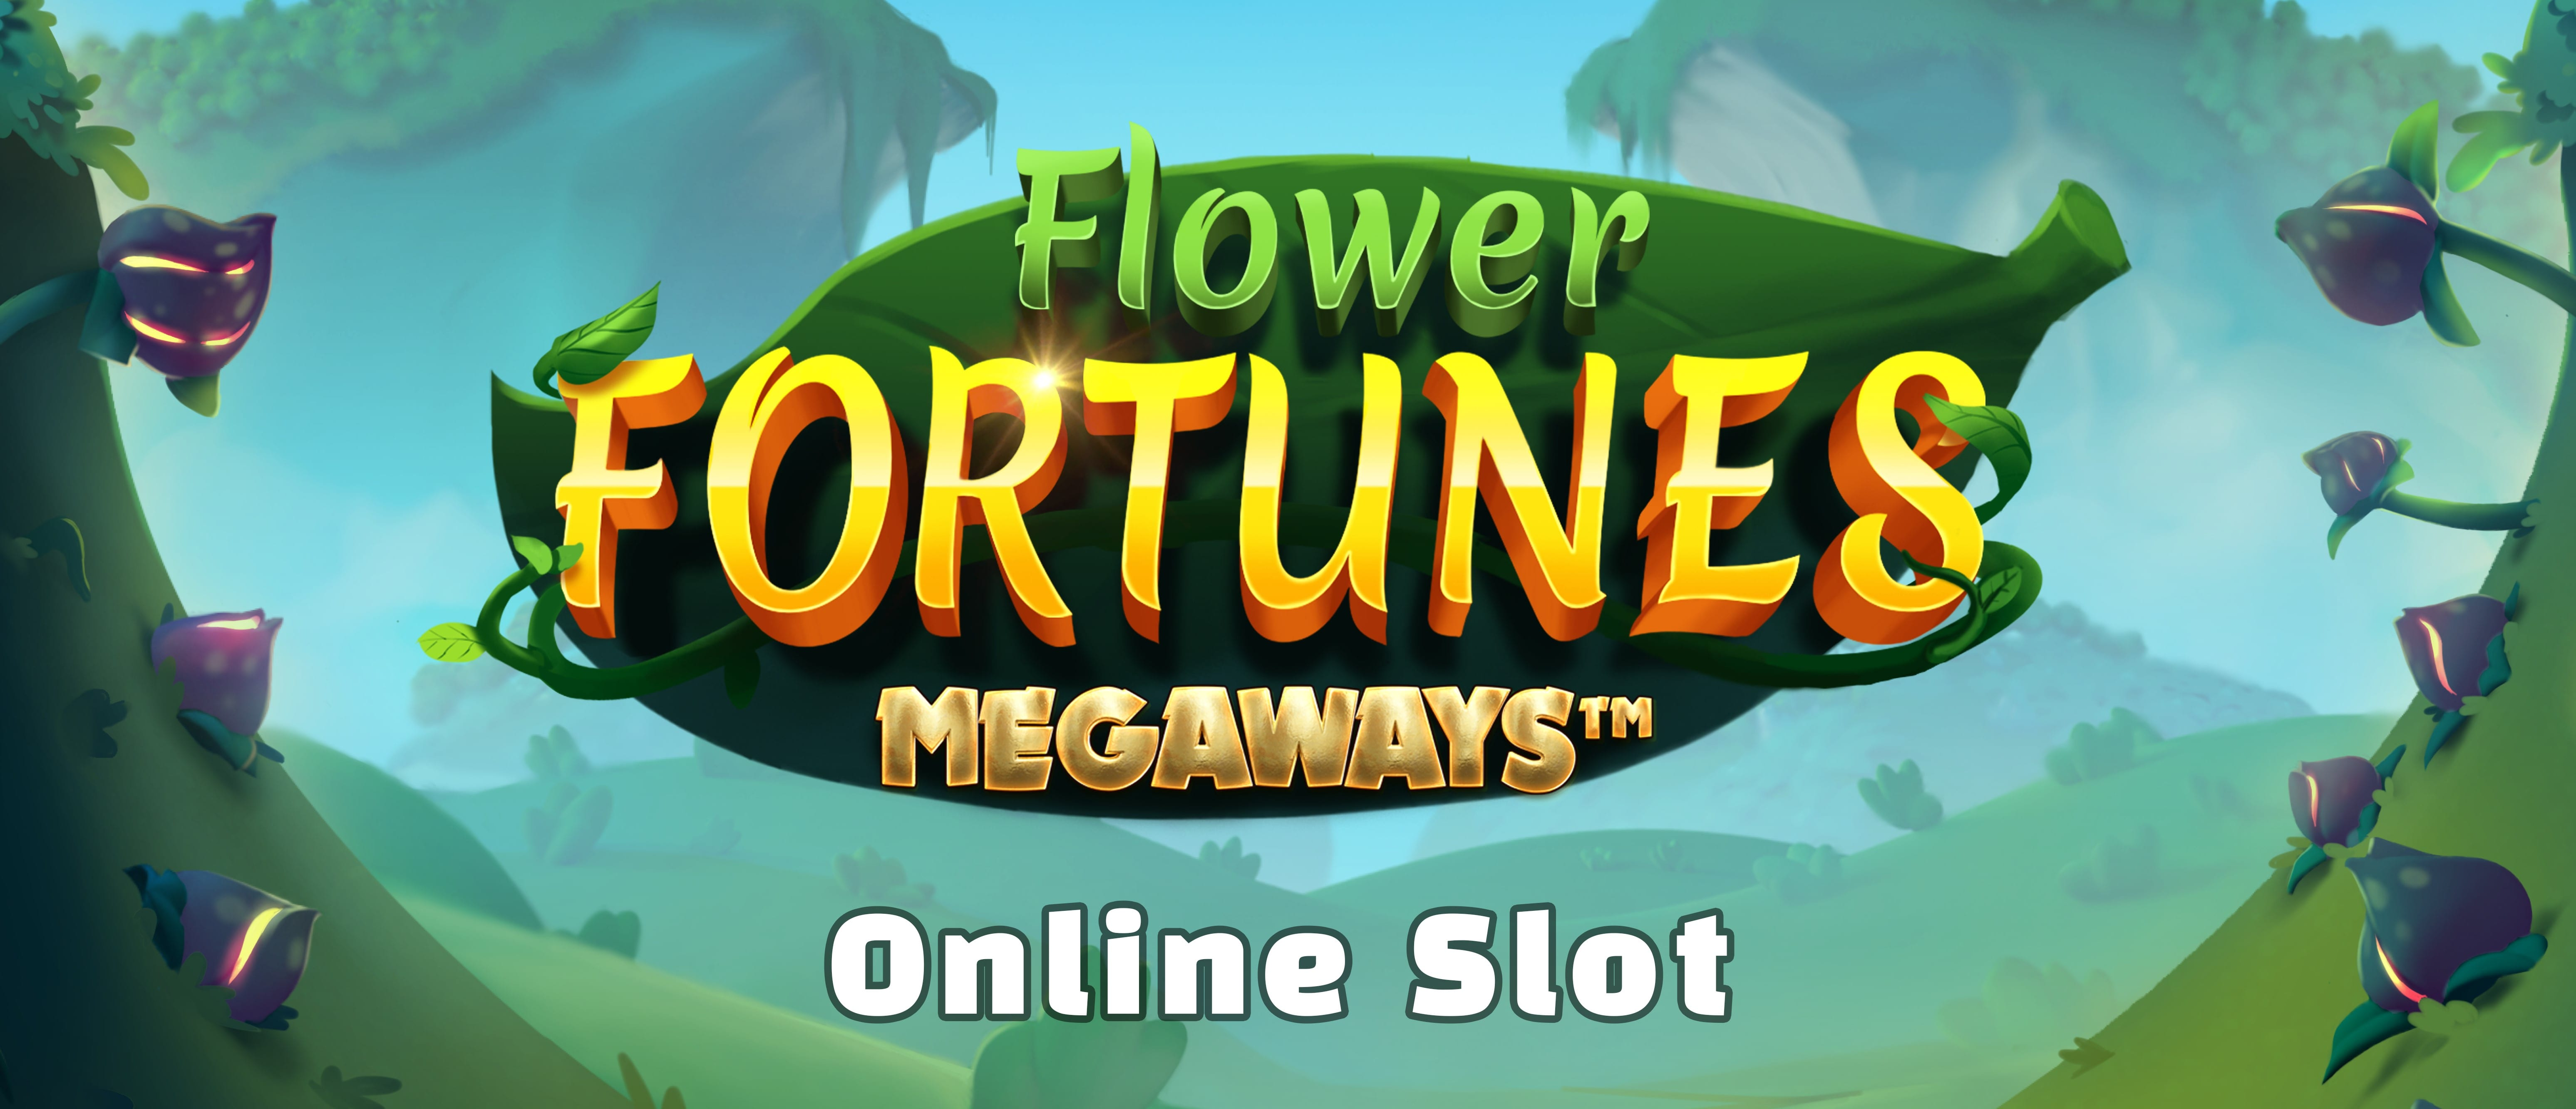 Flower Fortunes Megaways demo